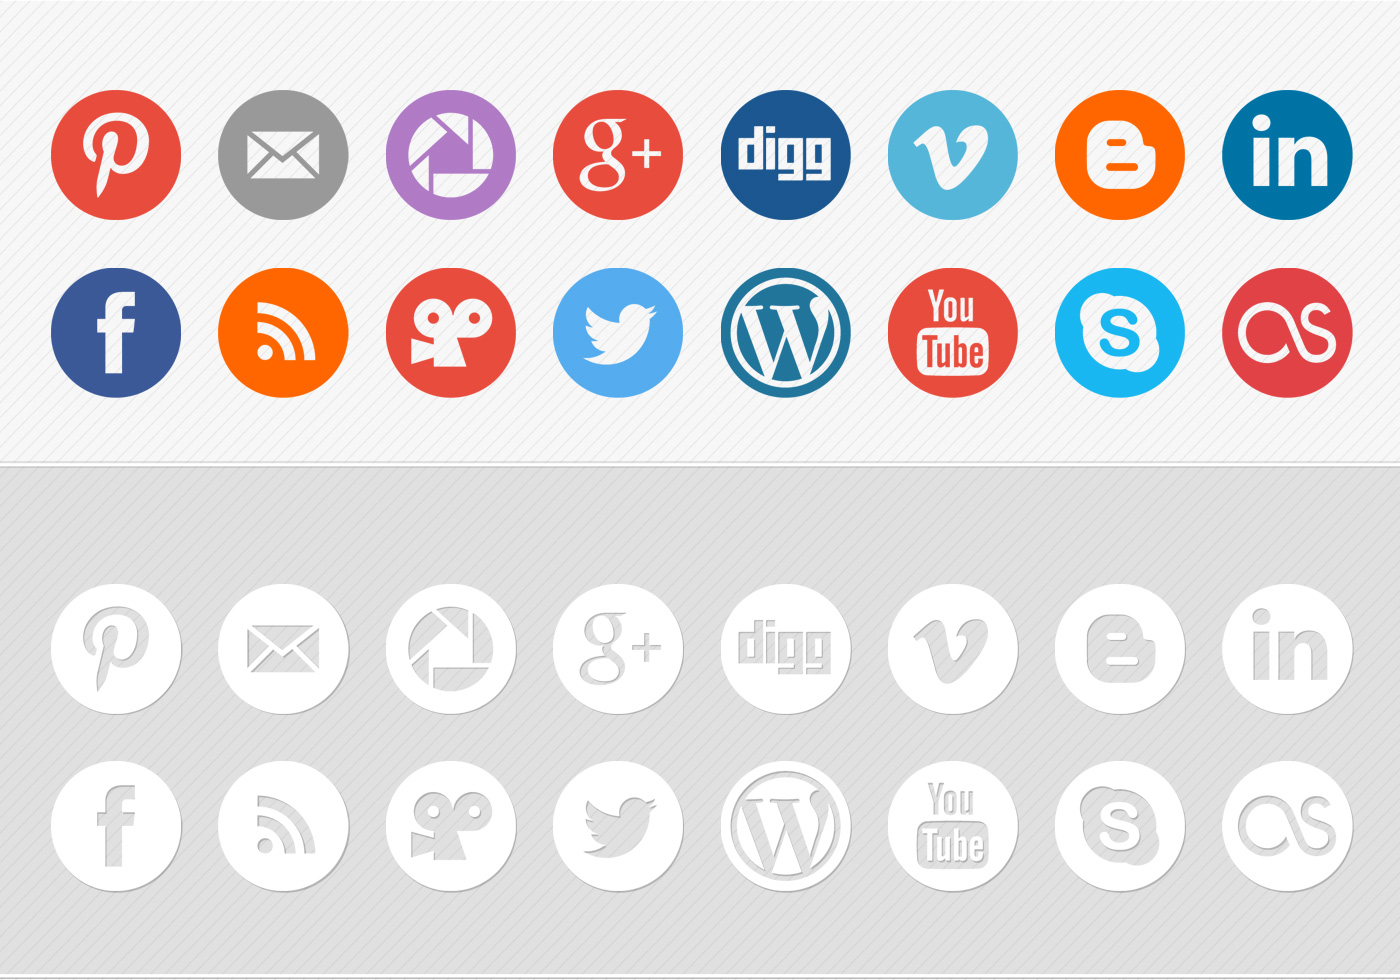 Vector White Social Media Icons - Complete web icon set